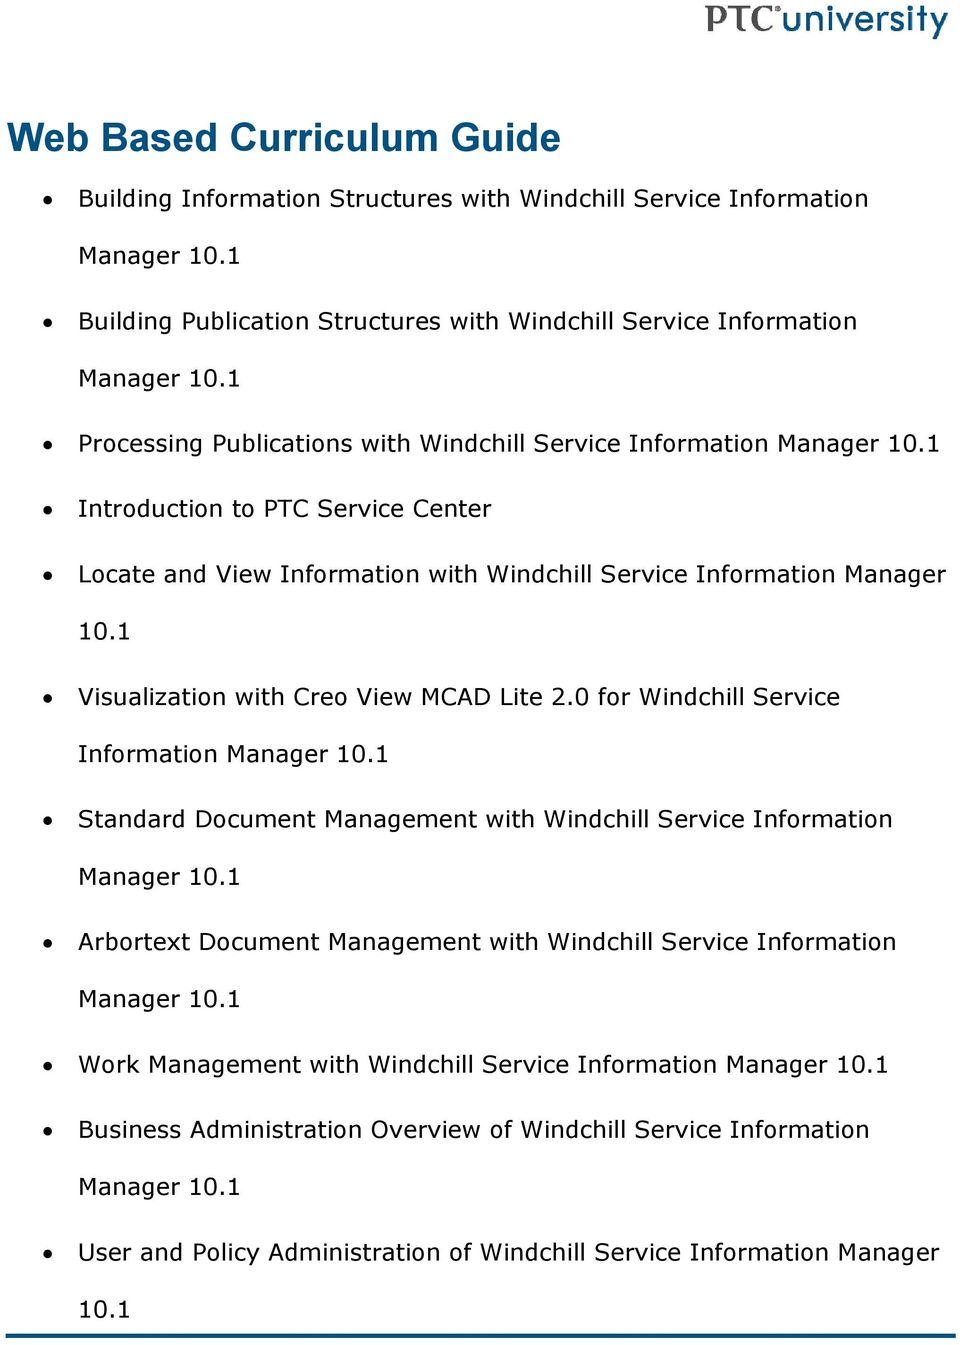 1 Visualization with Creo View MCAD Lite 2.0 for Windchill Service Information Manager 10.1 Standard Document Management with Windchill Service Information Manager 10.